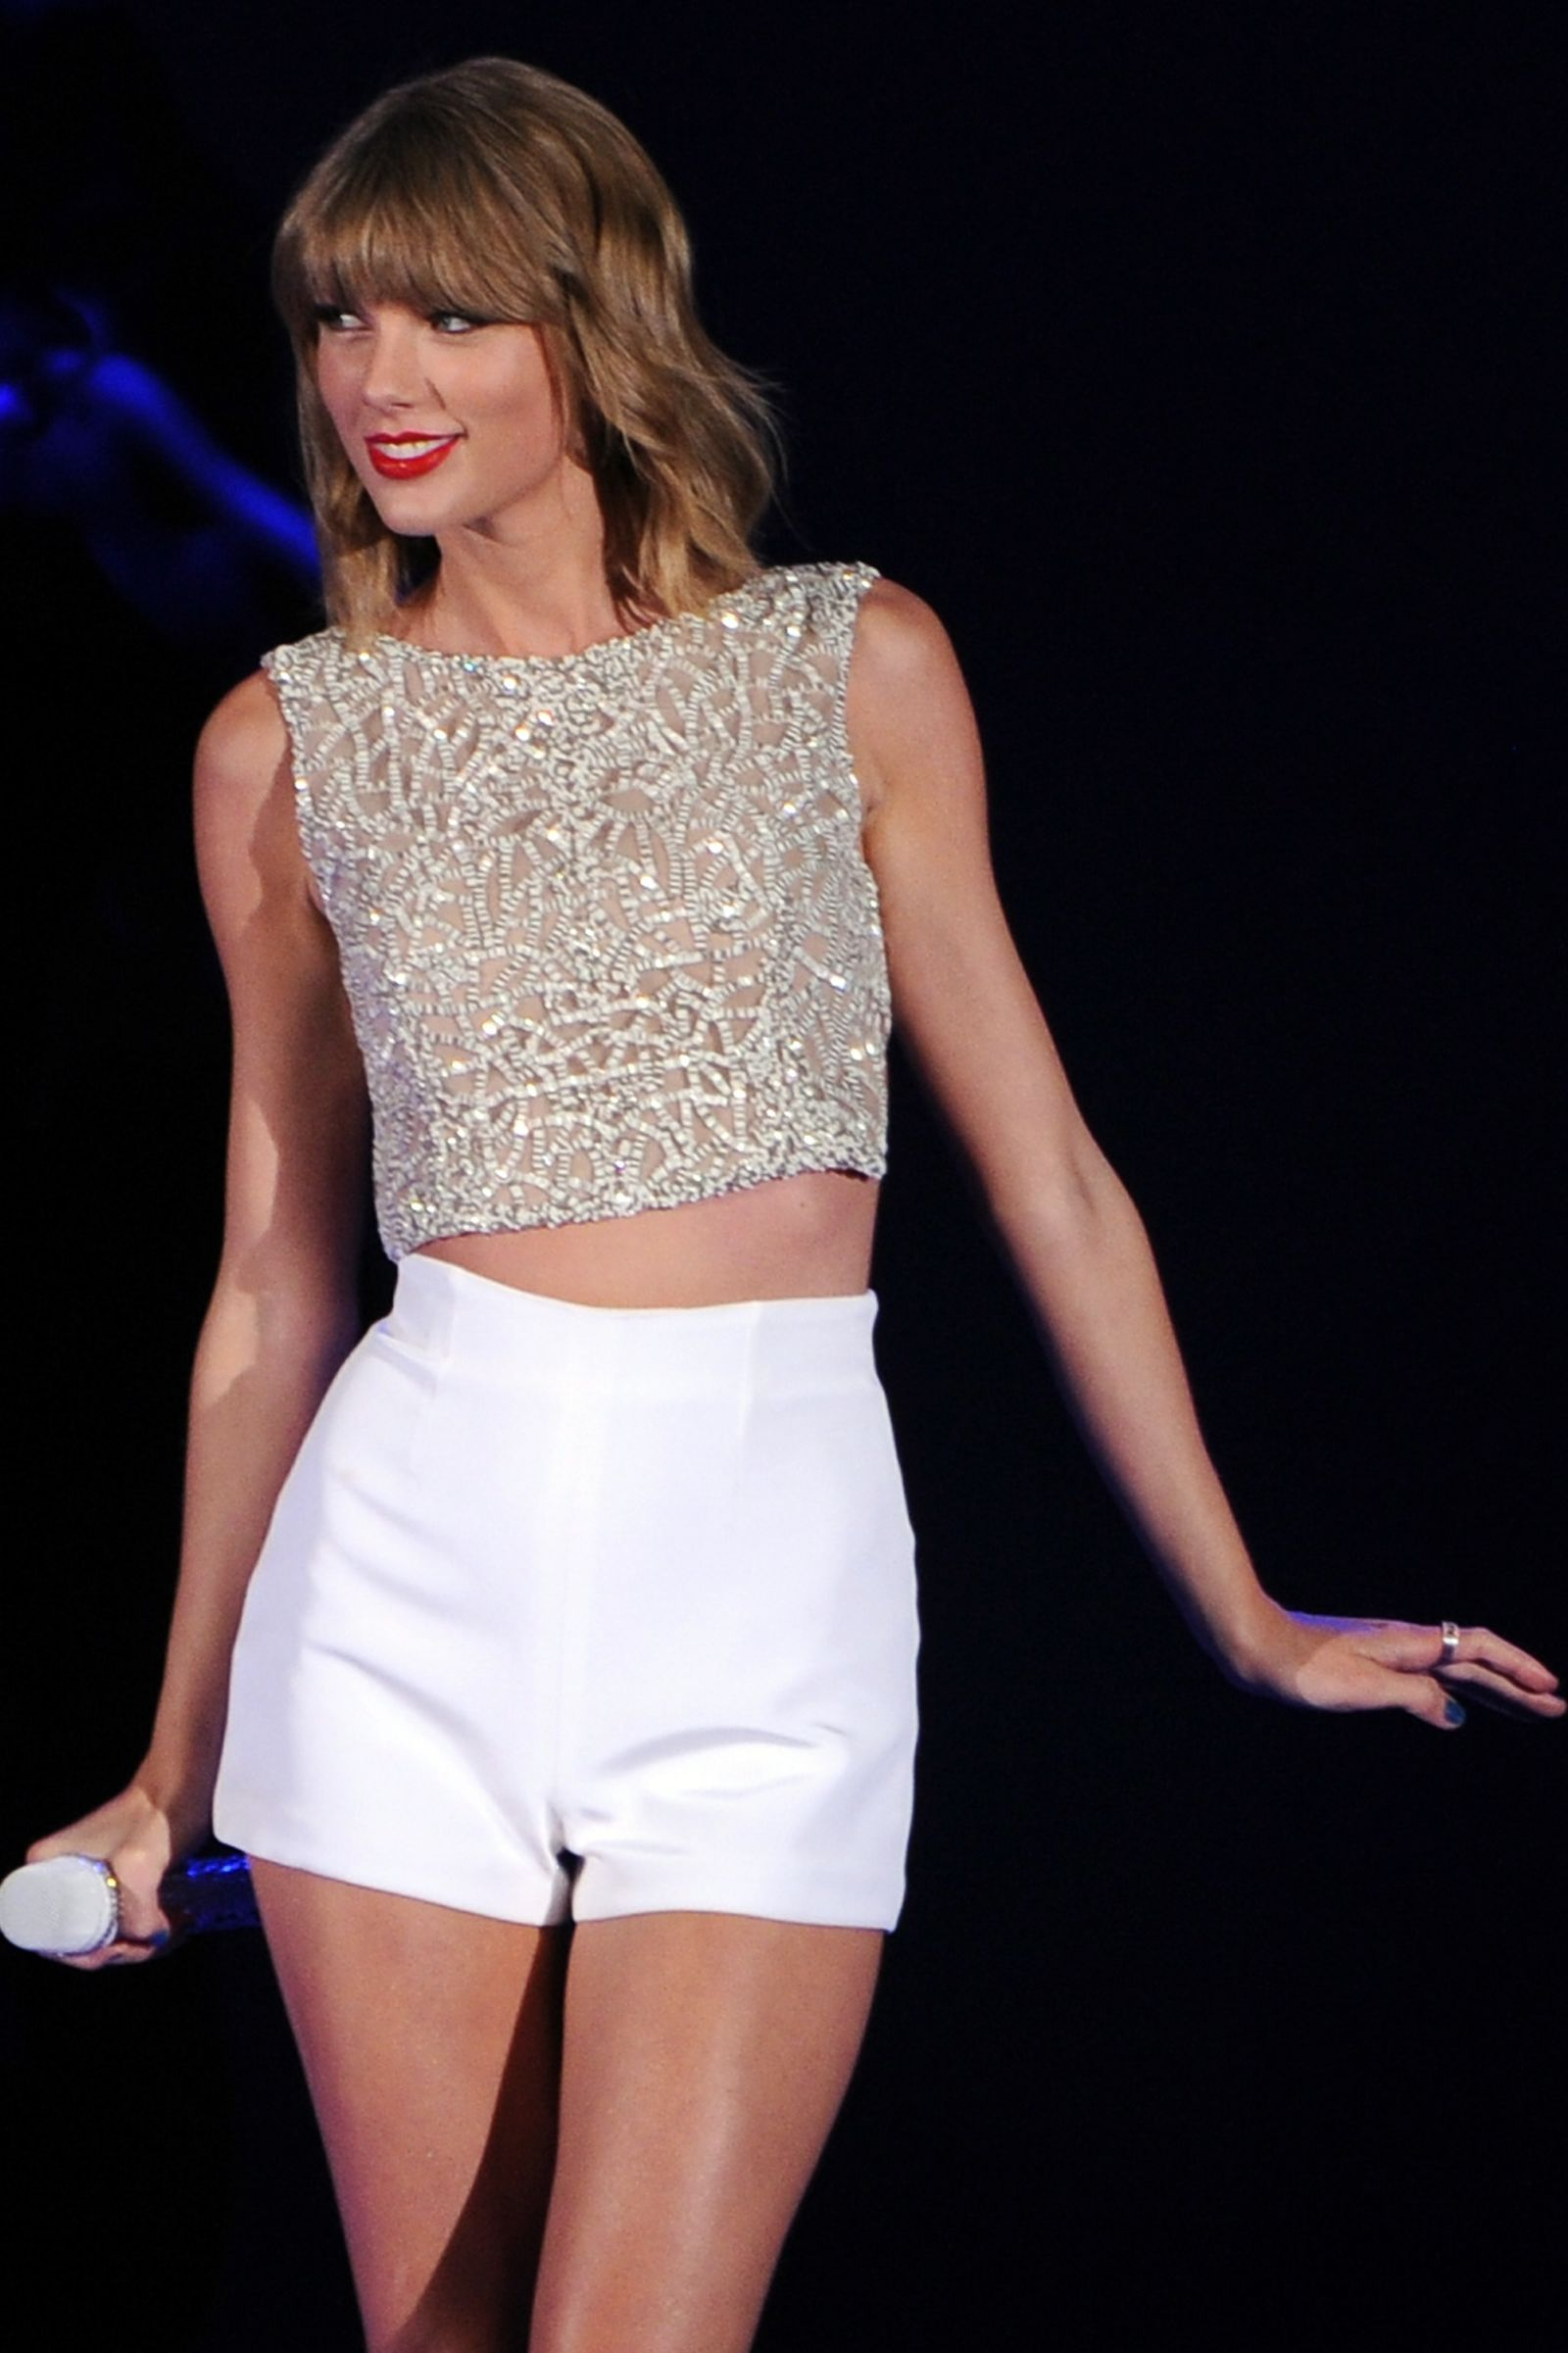 Taylor performs at the Hollywood Bowl on Oct. 24, 2014, in Los Angeles, California. Getty -Cosmopolitan.com